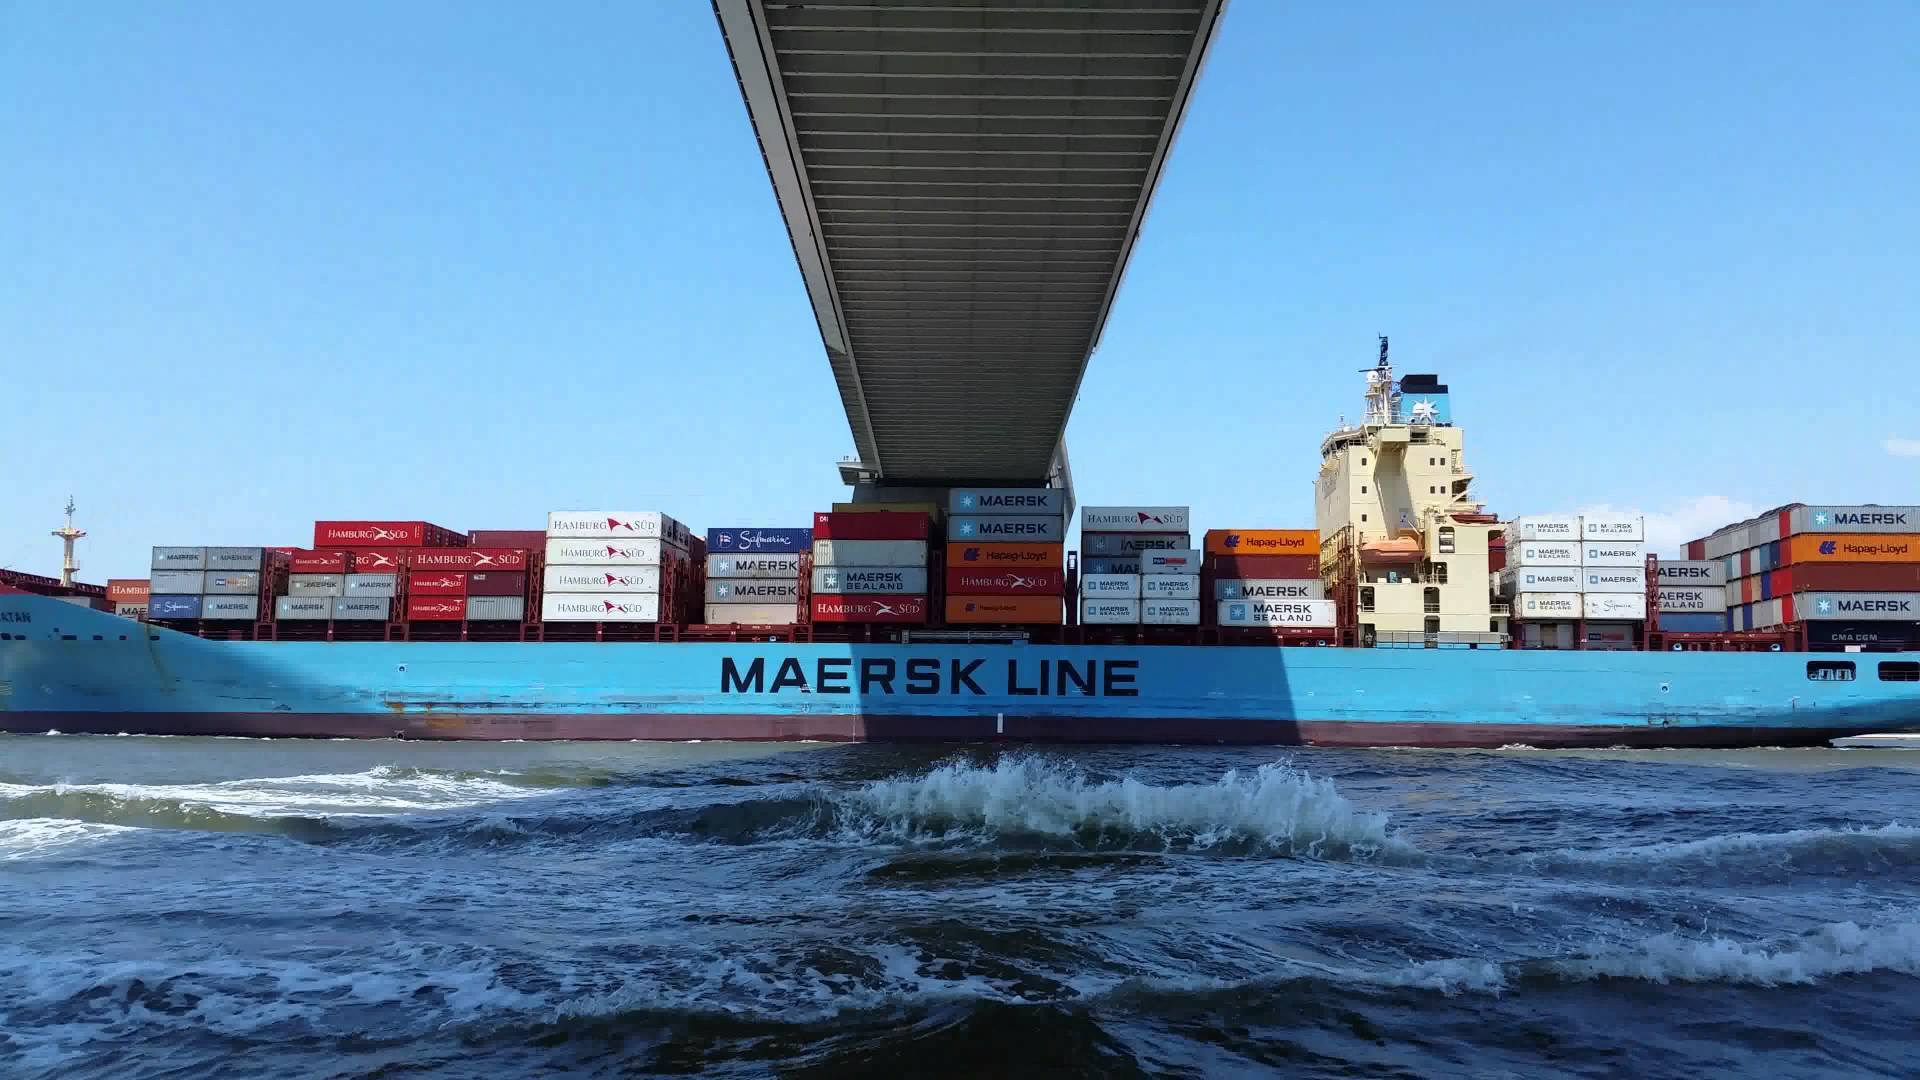 Maersk line Interview